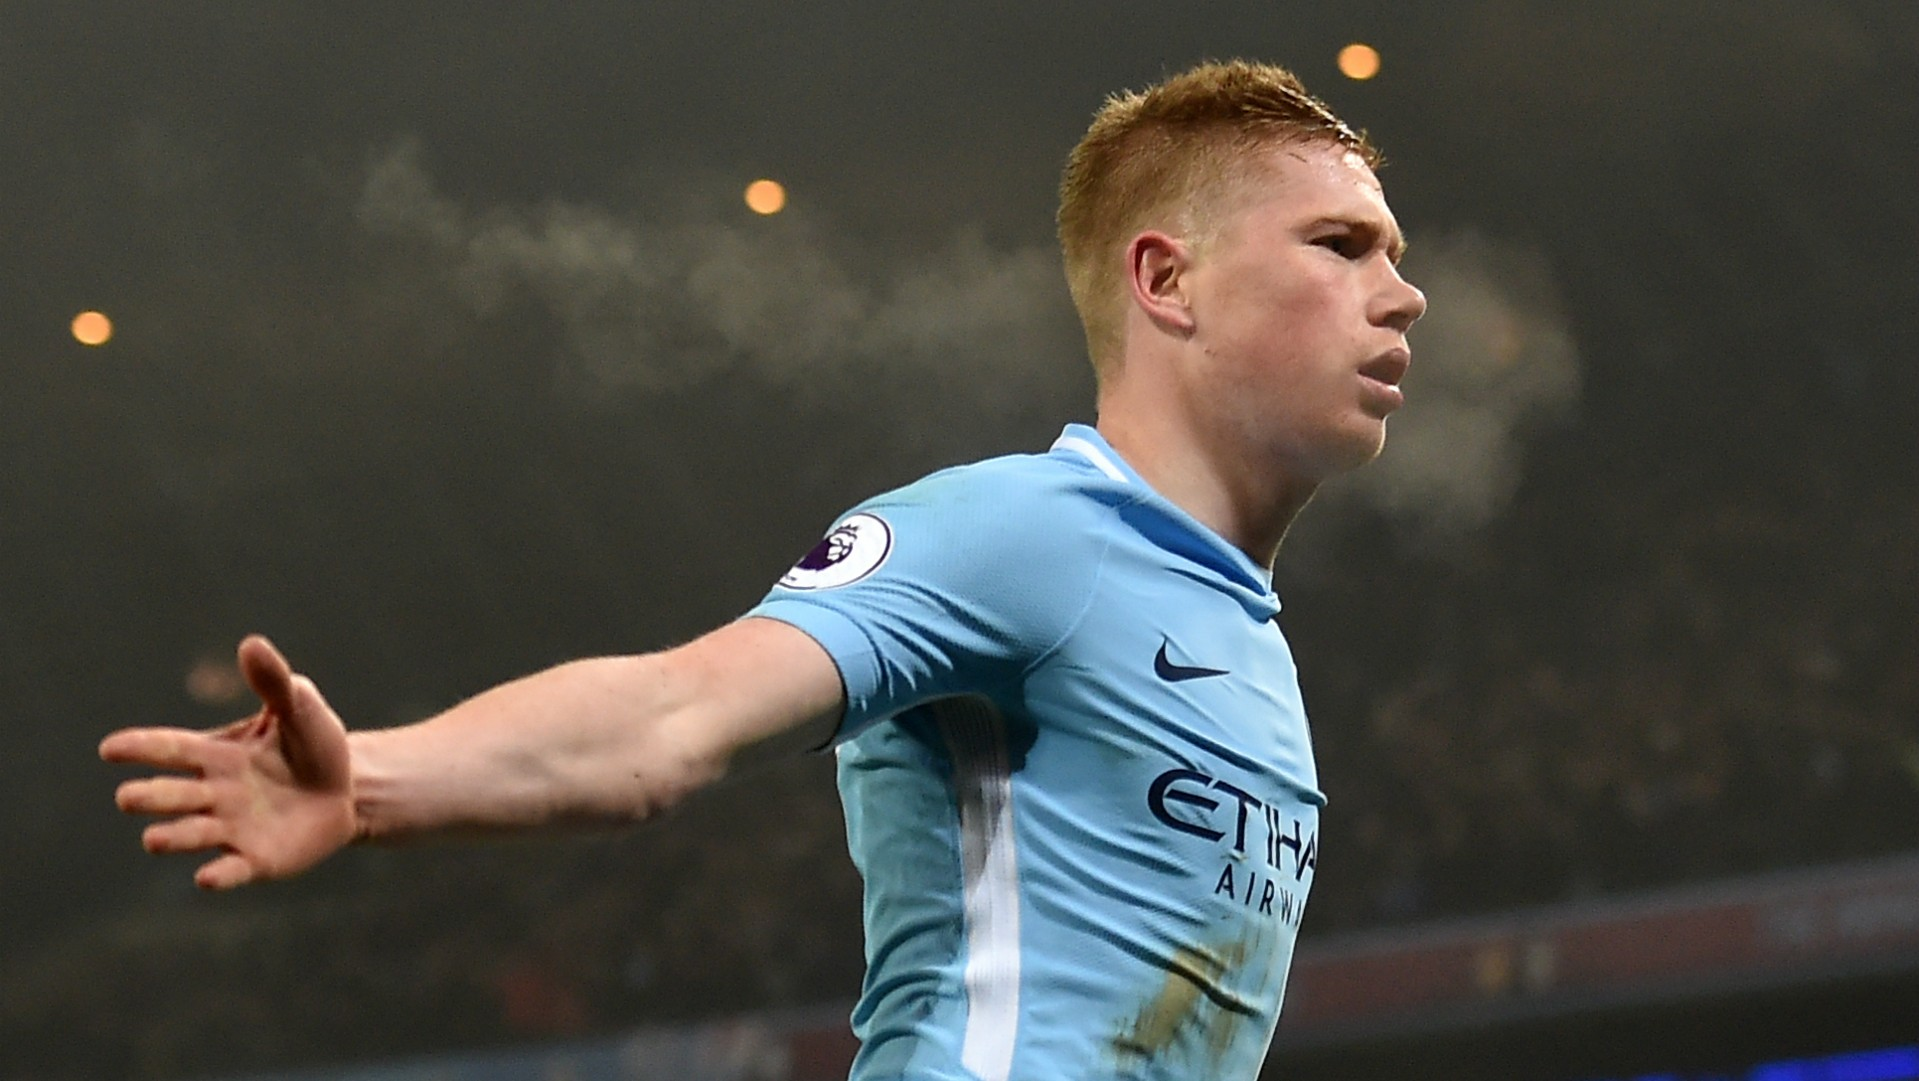 https://images.performgroup.com/di/library/GOAL/d2/eb/kevin-de-bruyne-manchester-city_l5e0w596ivfc1ifqsfsqde2xl.jpg?t=1619847160&quality=90&w=0&h=1260